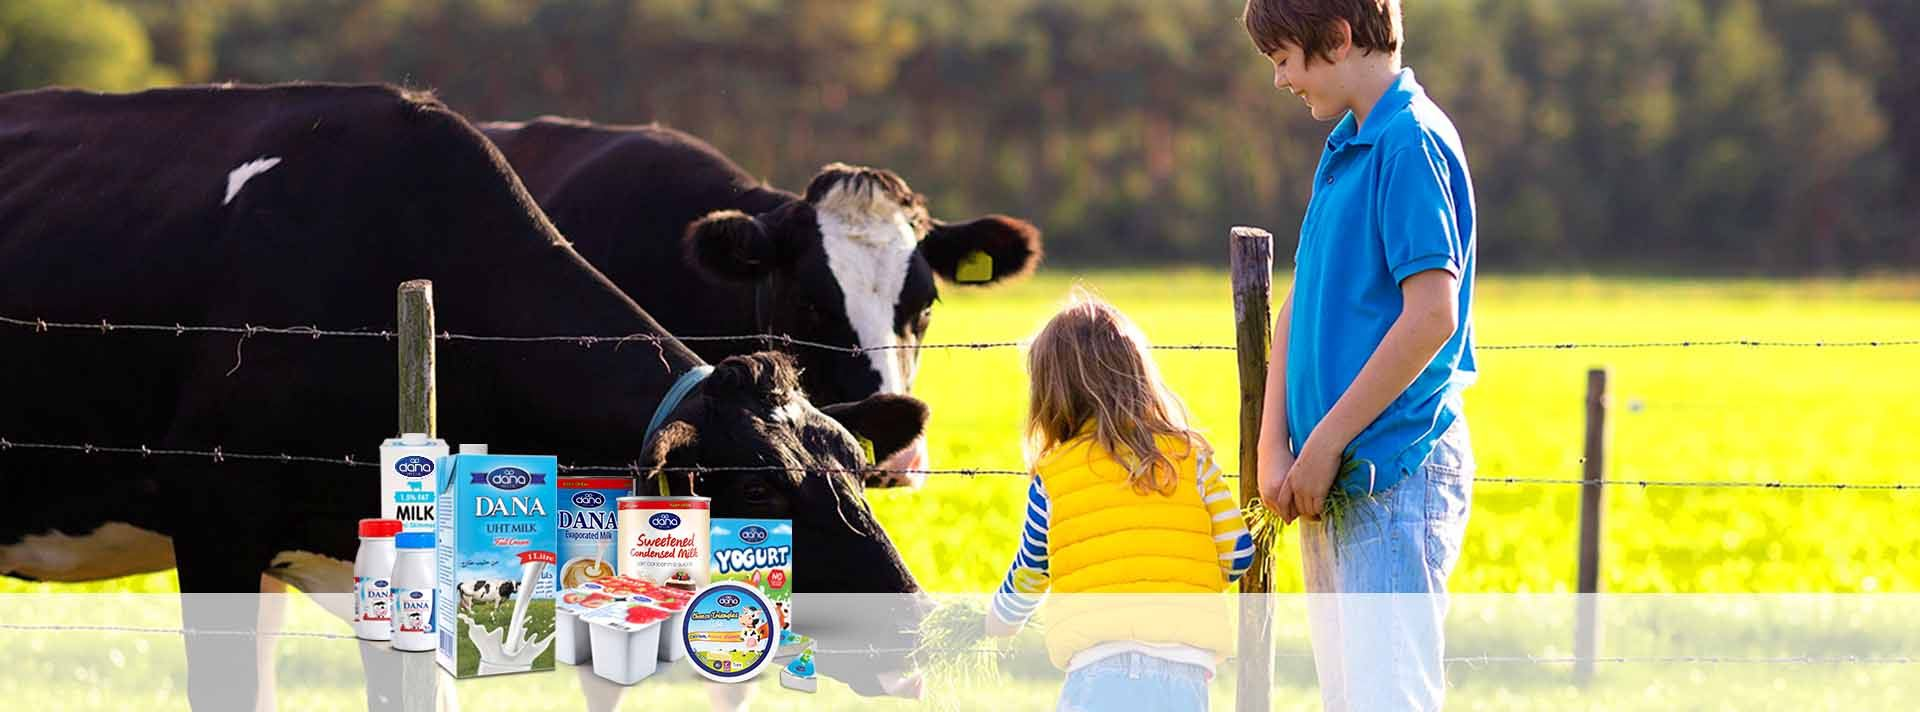 DANA Dairy is manufacturer and supplier of Dana brand long-life milk, long-life yogurt, long-life cheese, sweetened and unsweetened condensed milk. We supplier to all world destinations.